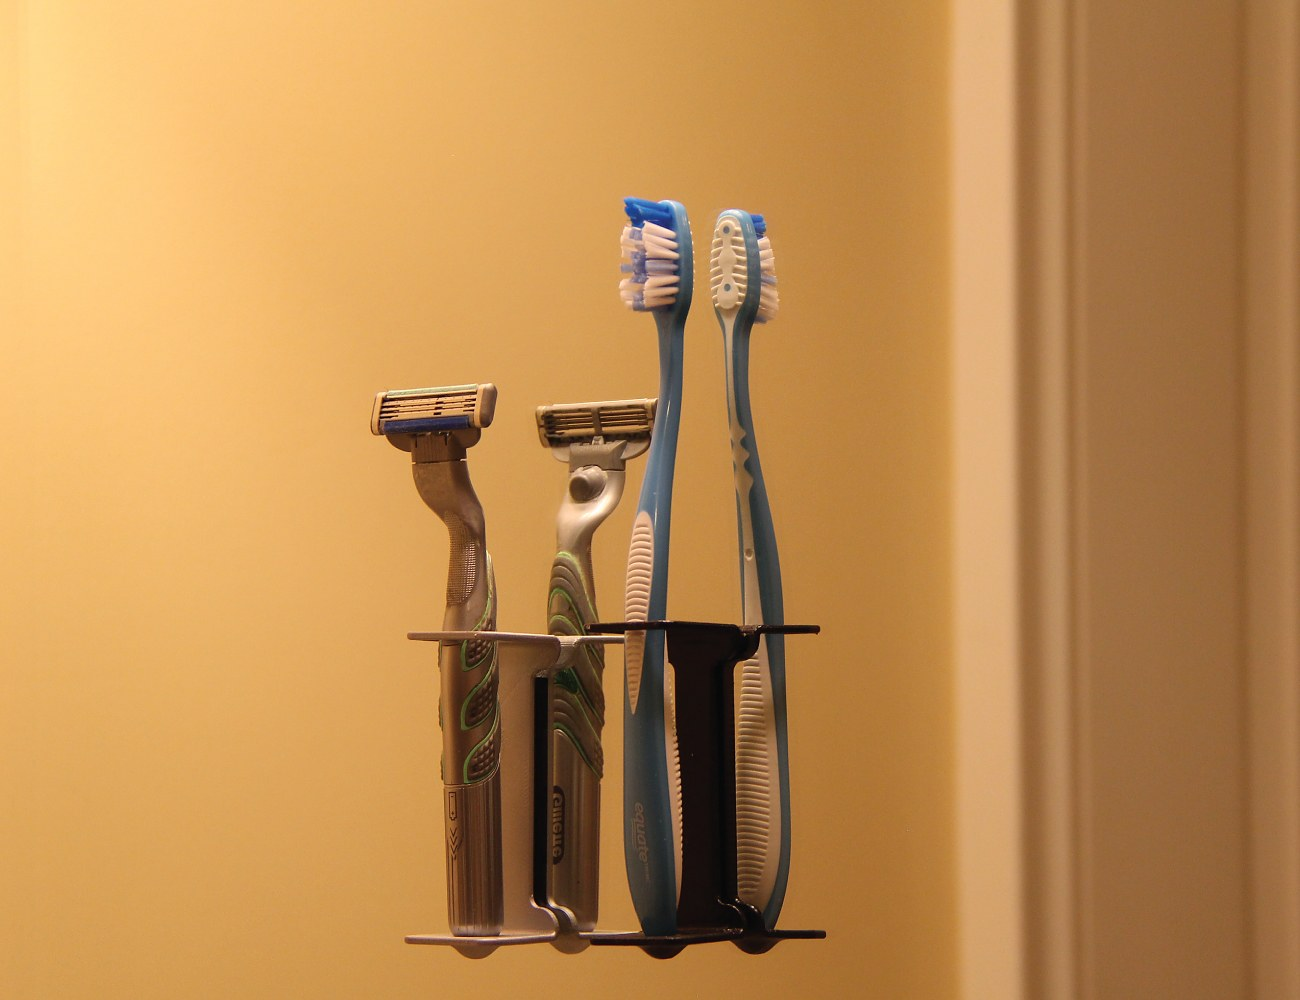 Nano Suction Toothbrush holder